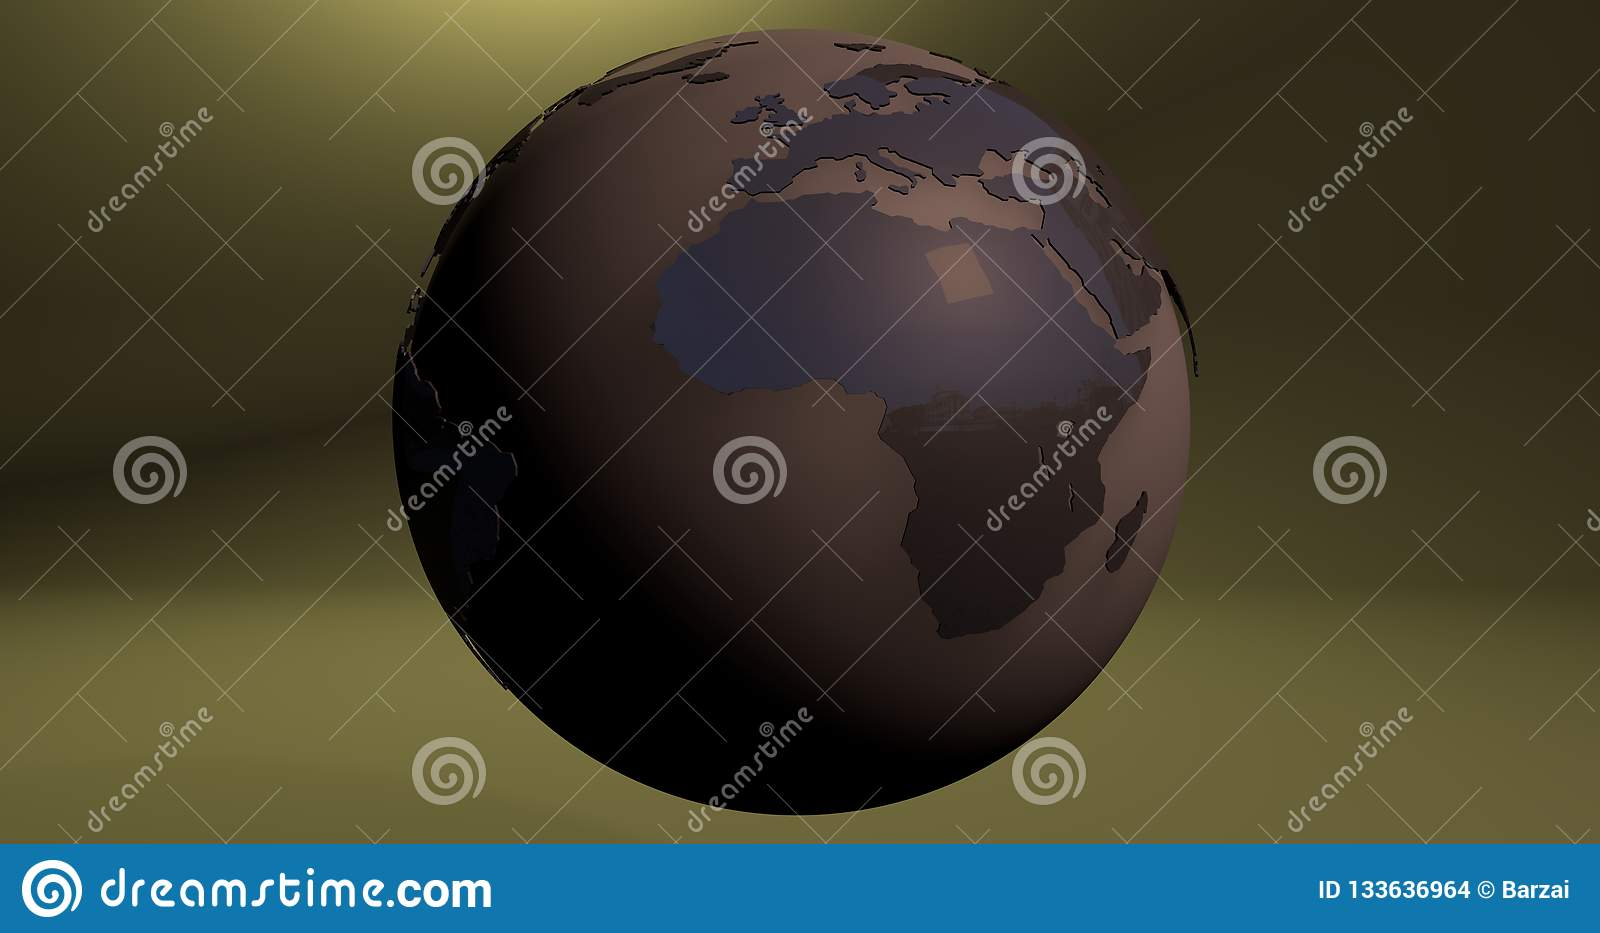 A background with the Earth planet in brown color, which shows the Africa continent.